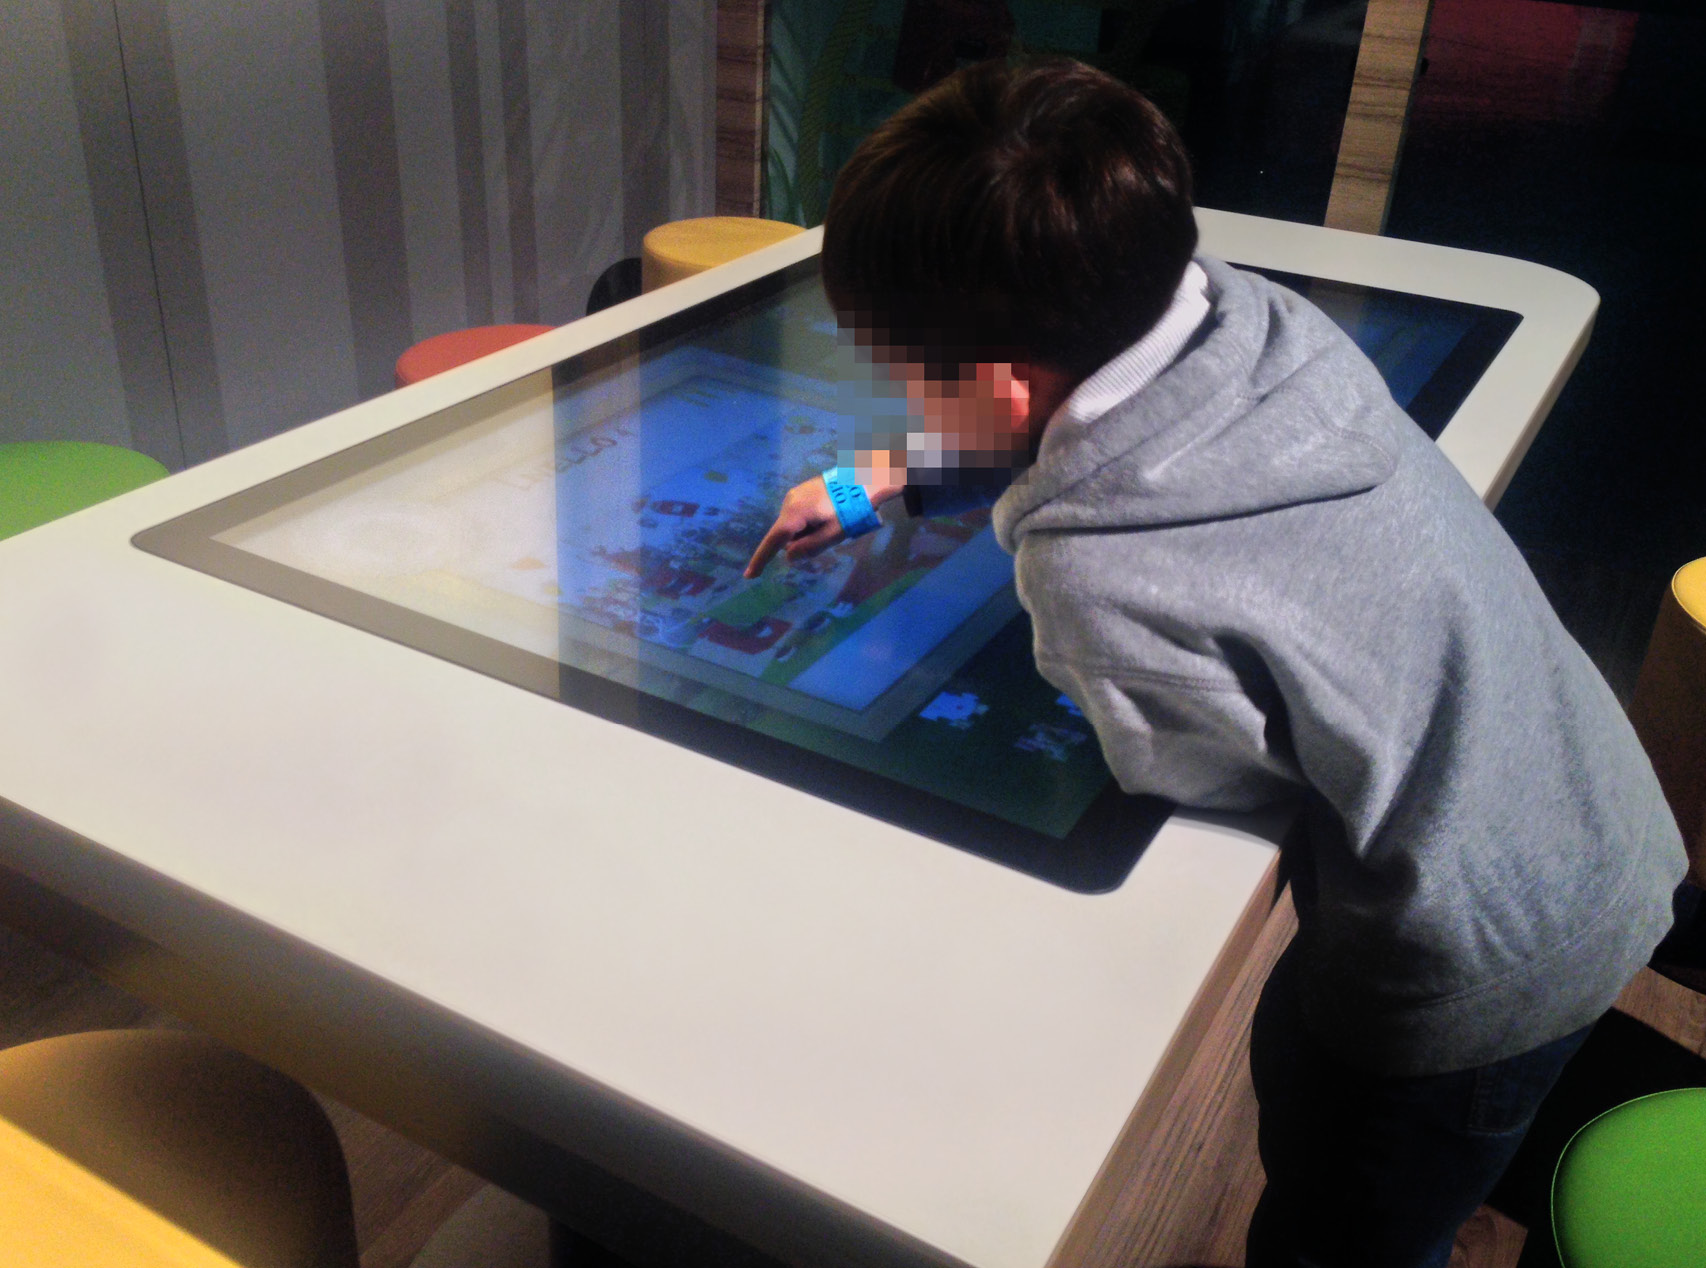 Touchwindow - Digital Entertainment for Kids